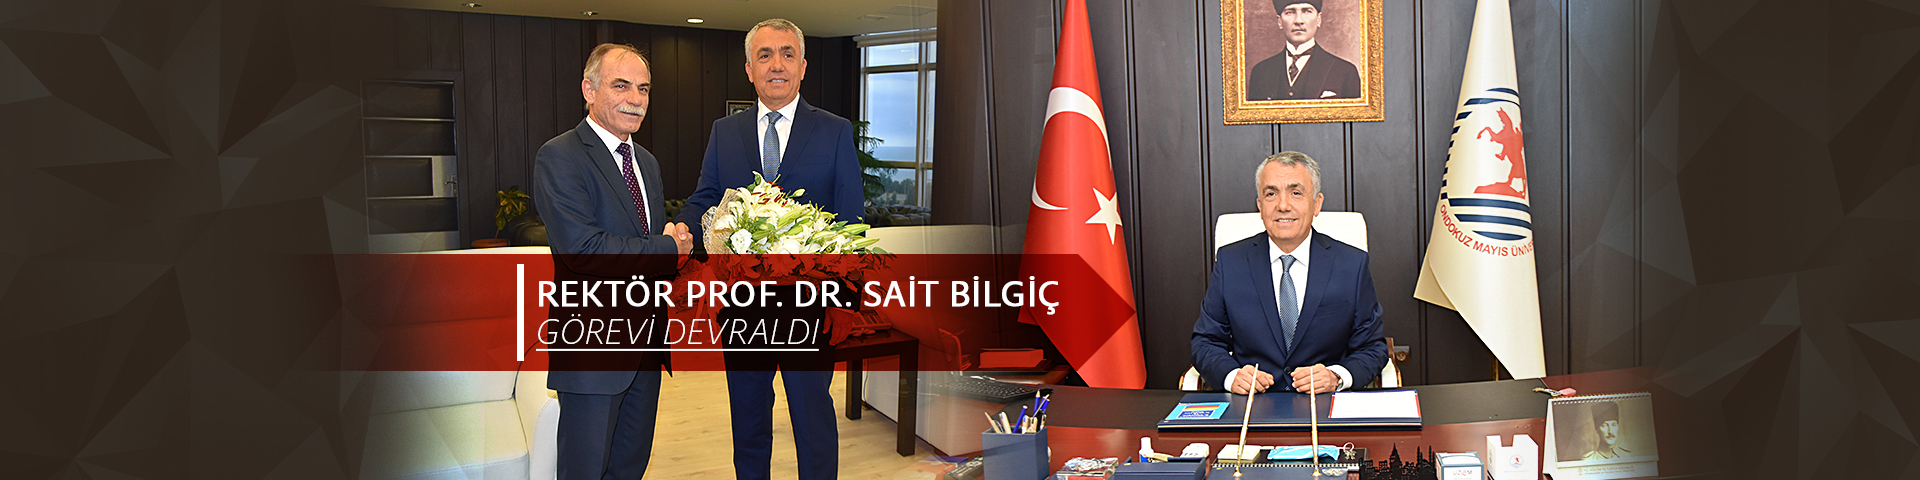 Prof. Dr. Sait Bilgiç Takes Over as Rector